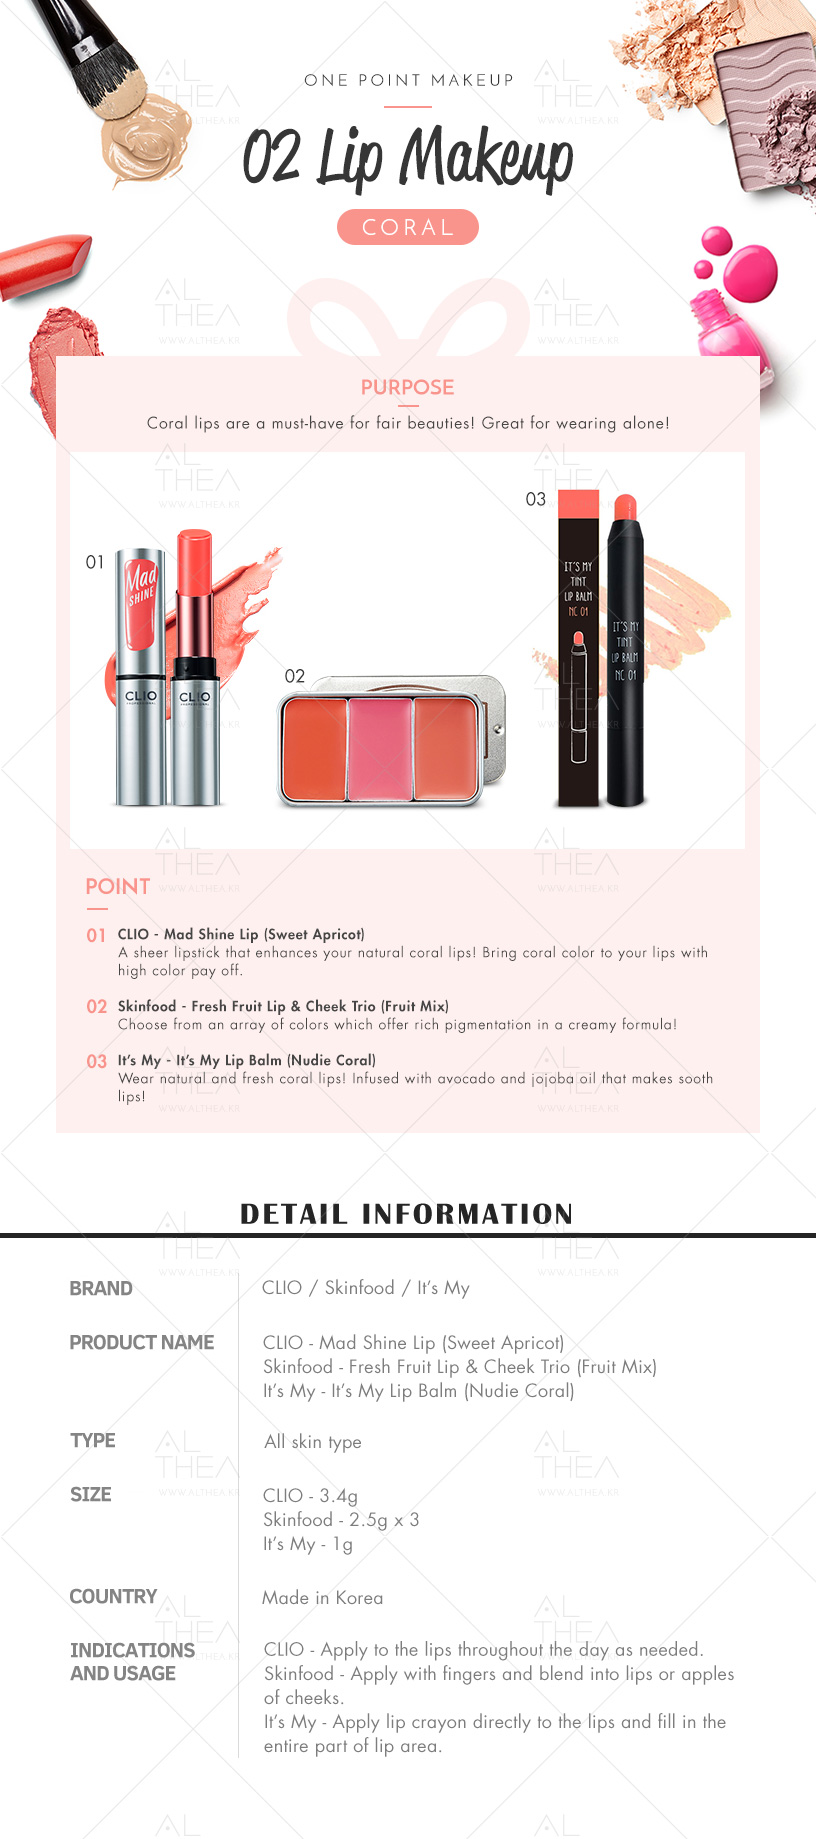 Details How To Use Apply